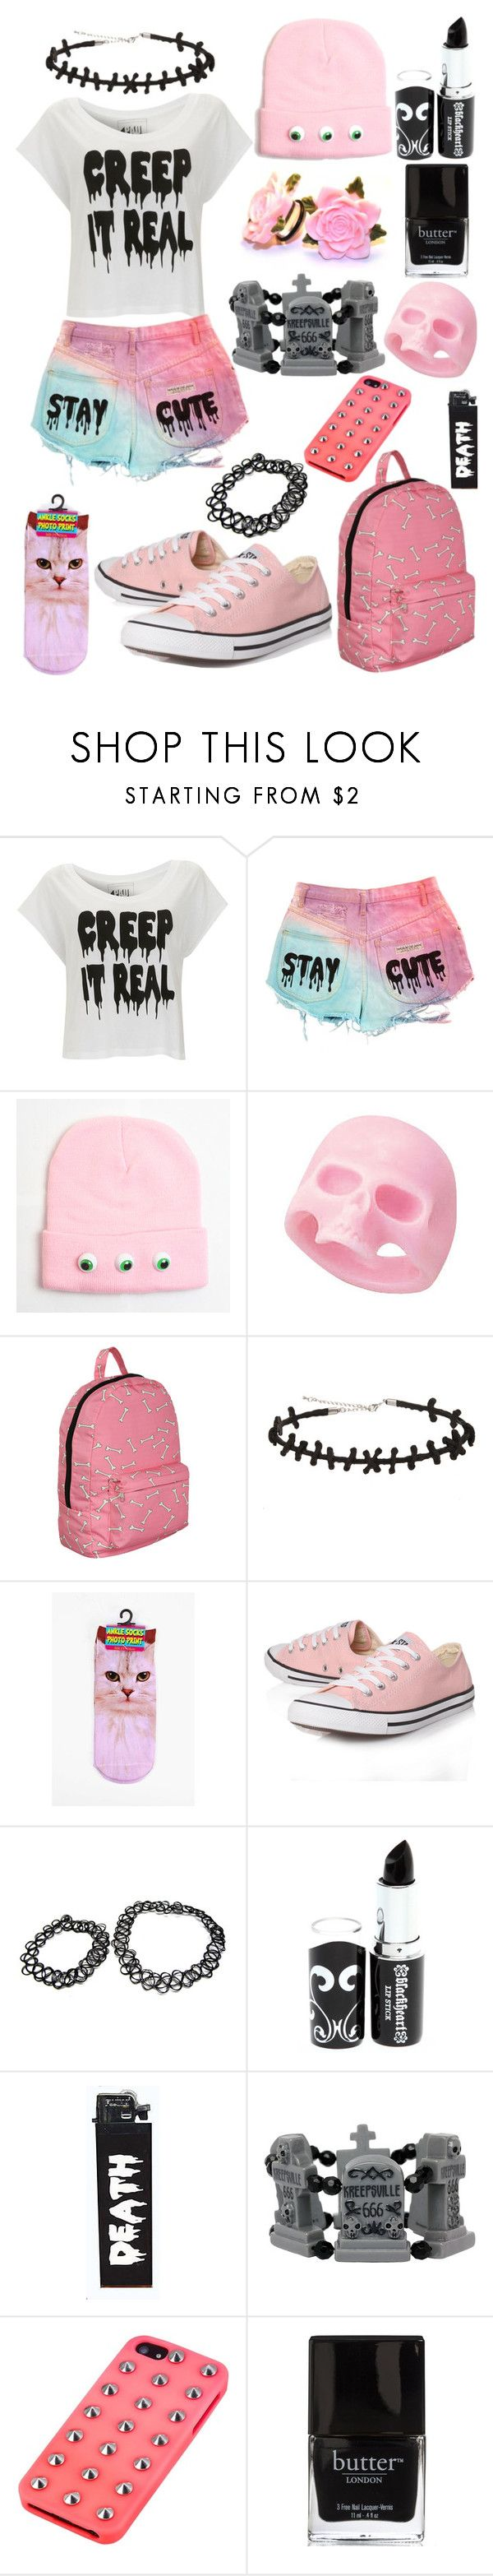 """Creep It Real & Stay Cute ; Pastel Goth"" by ofmiceandvampiraydg ❤ liked on Polyvore featuring Paul's Boutique, Hot Topic, Converse and Material Girl"